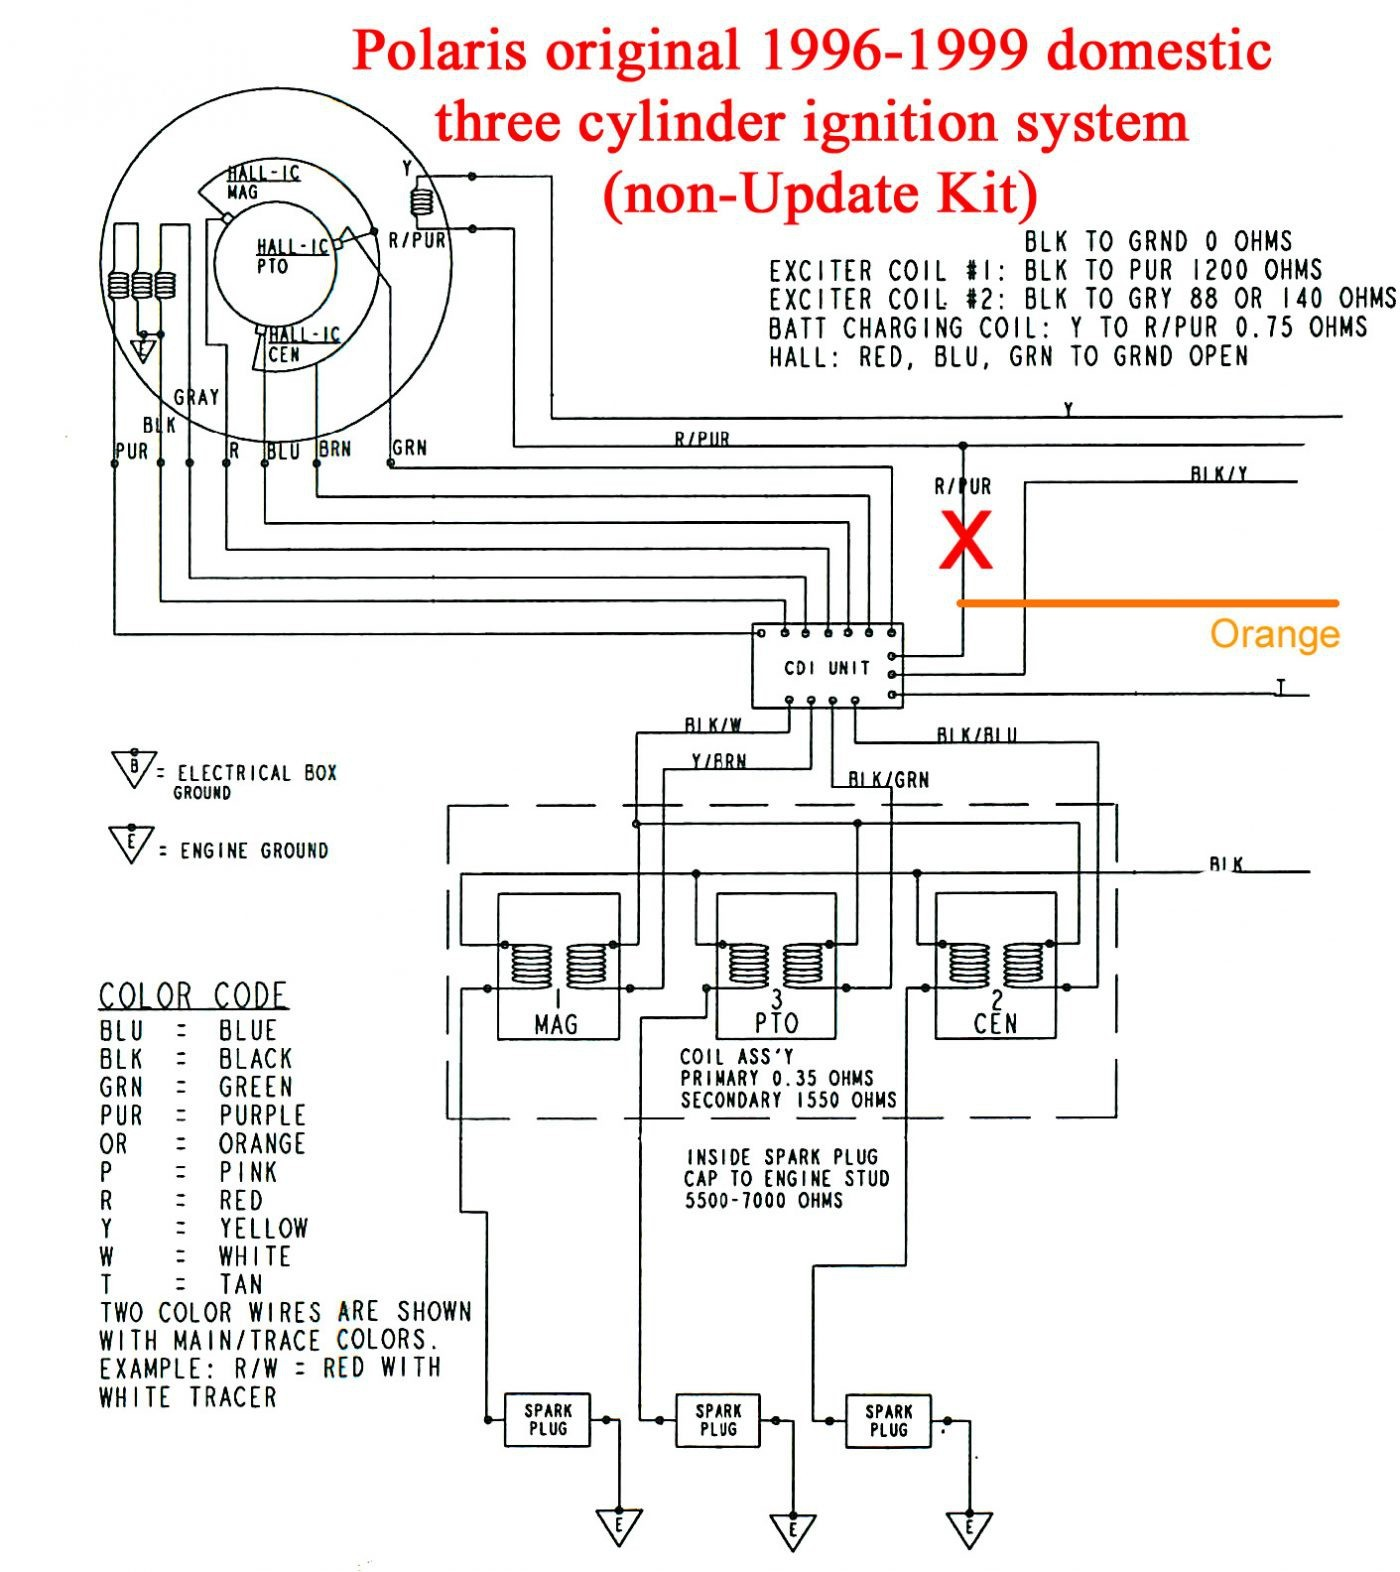 350 Tbi Wiring Diagram - 3.6.asyaunited.de • Tbi Engine Wiring Harness on tbi engine brackets, tbi coil harness, tbi throttle body,